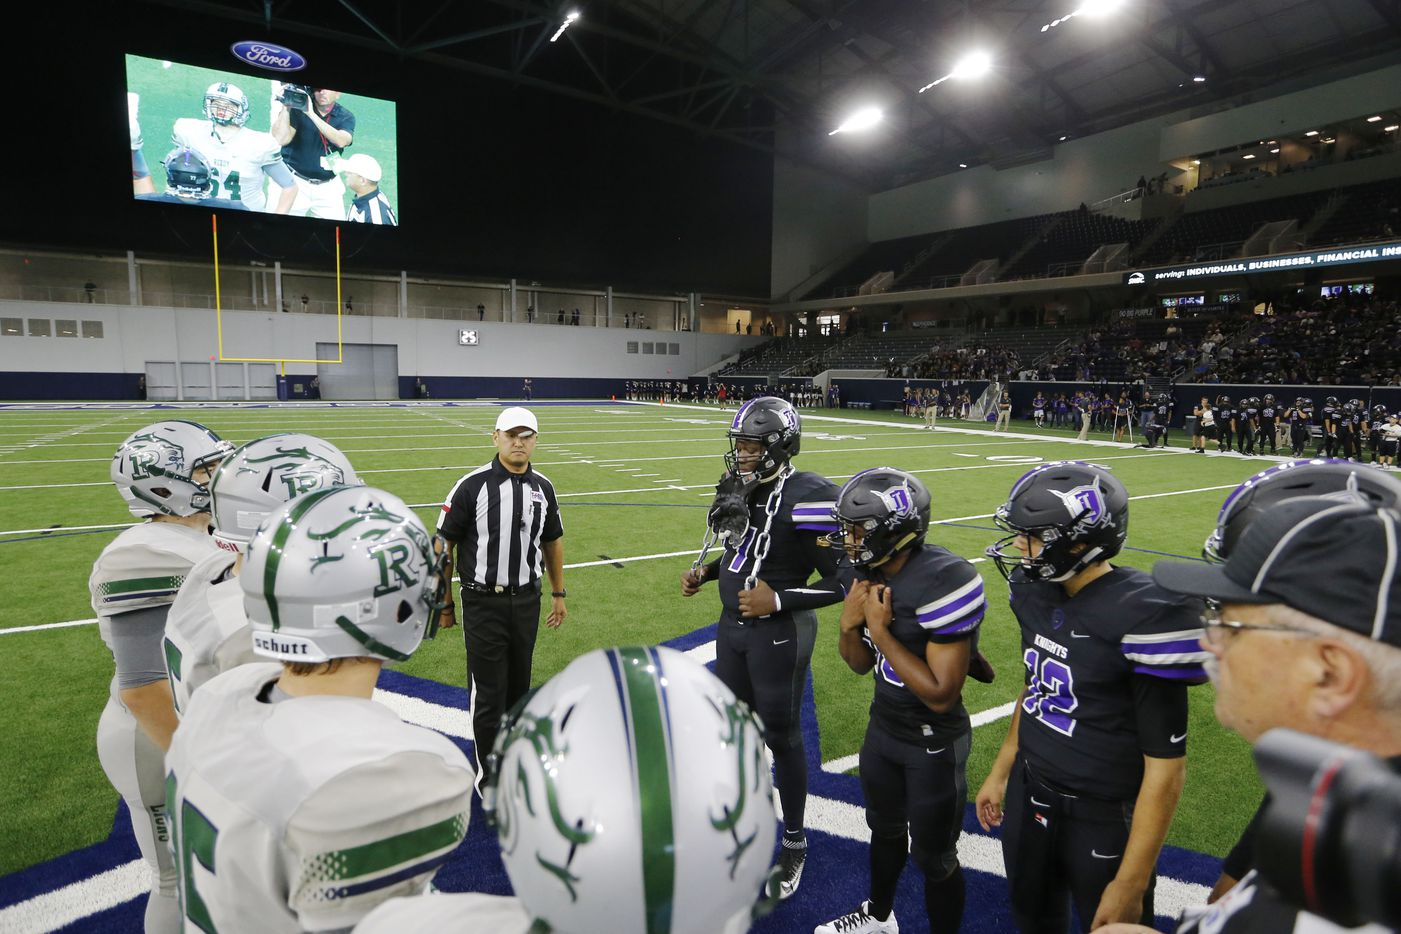 Coin toss at centerfield with Independence and Reedy High School's during the first high school football game at The Star in Frisco on Saturday, August 27, 2016. (Vernon Bryant/The Dallas Morning News)